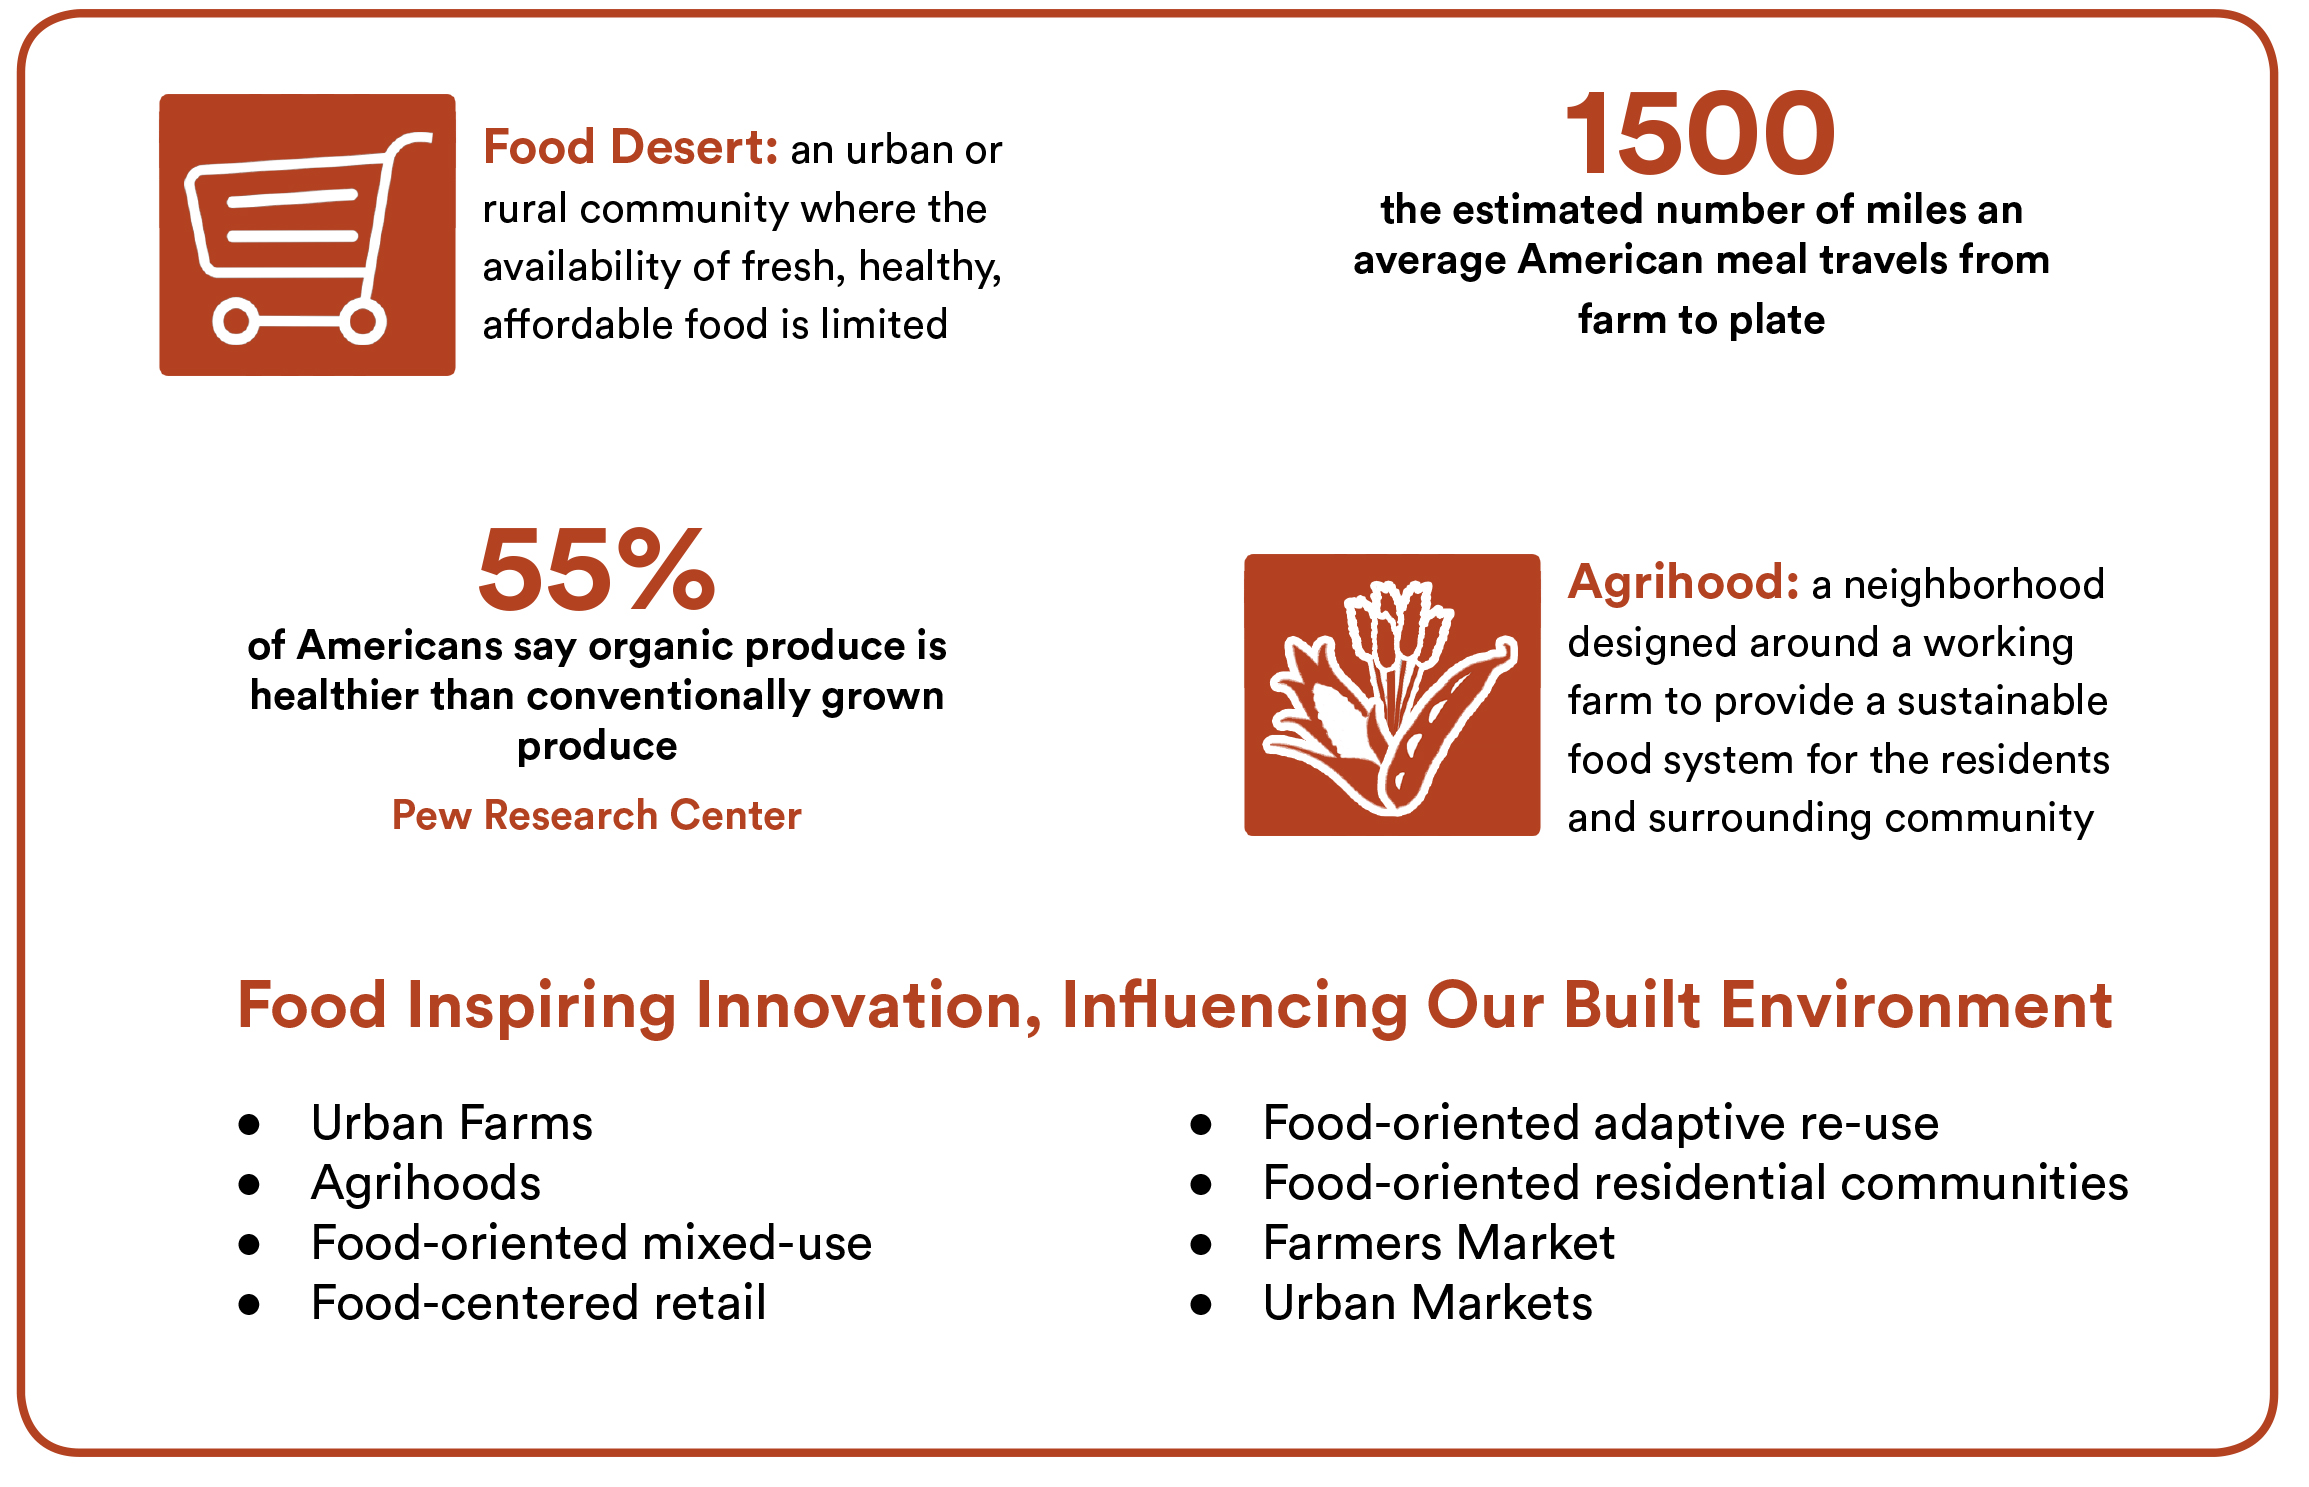 Infographic showing how locally grown food can inspire communities